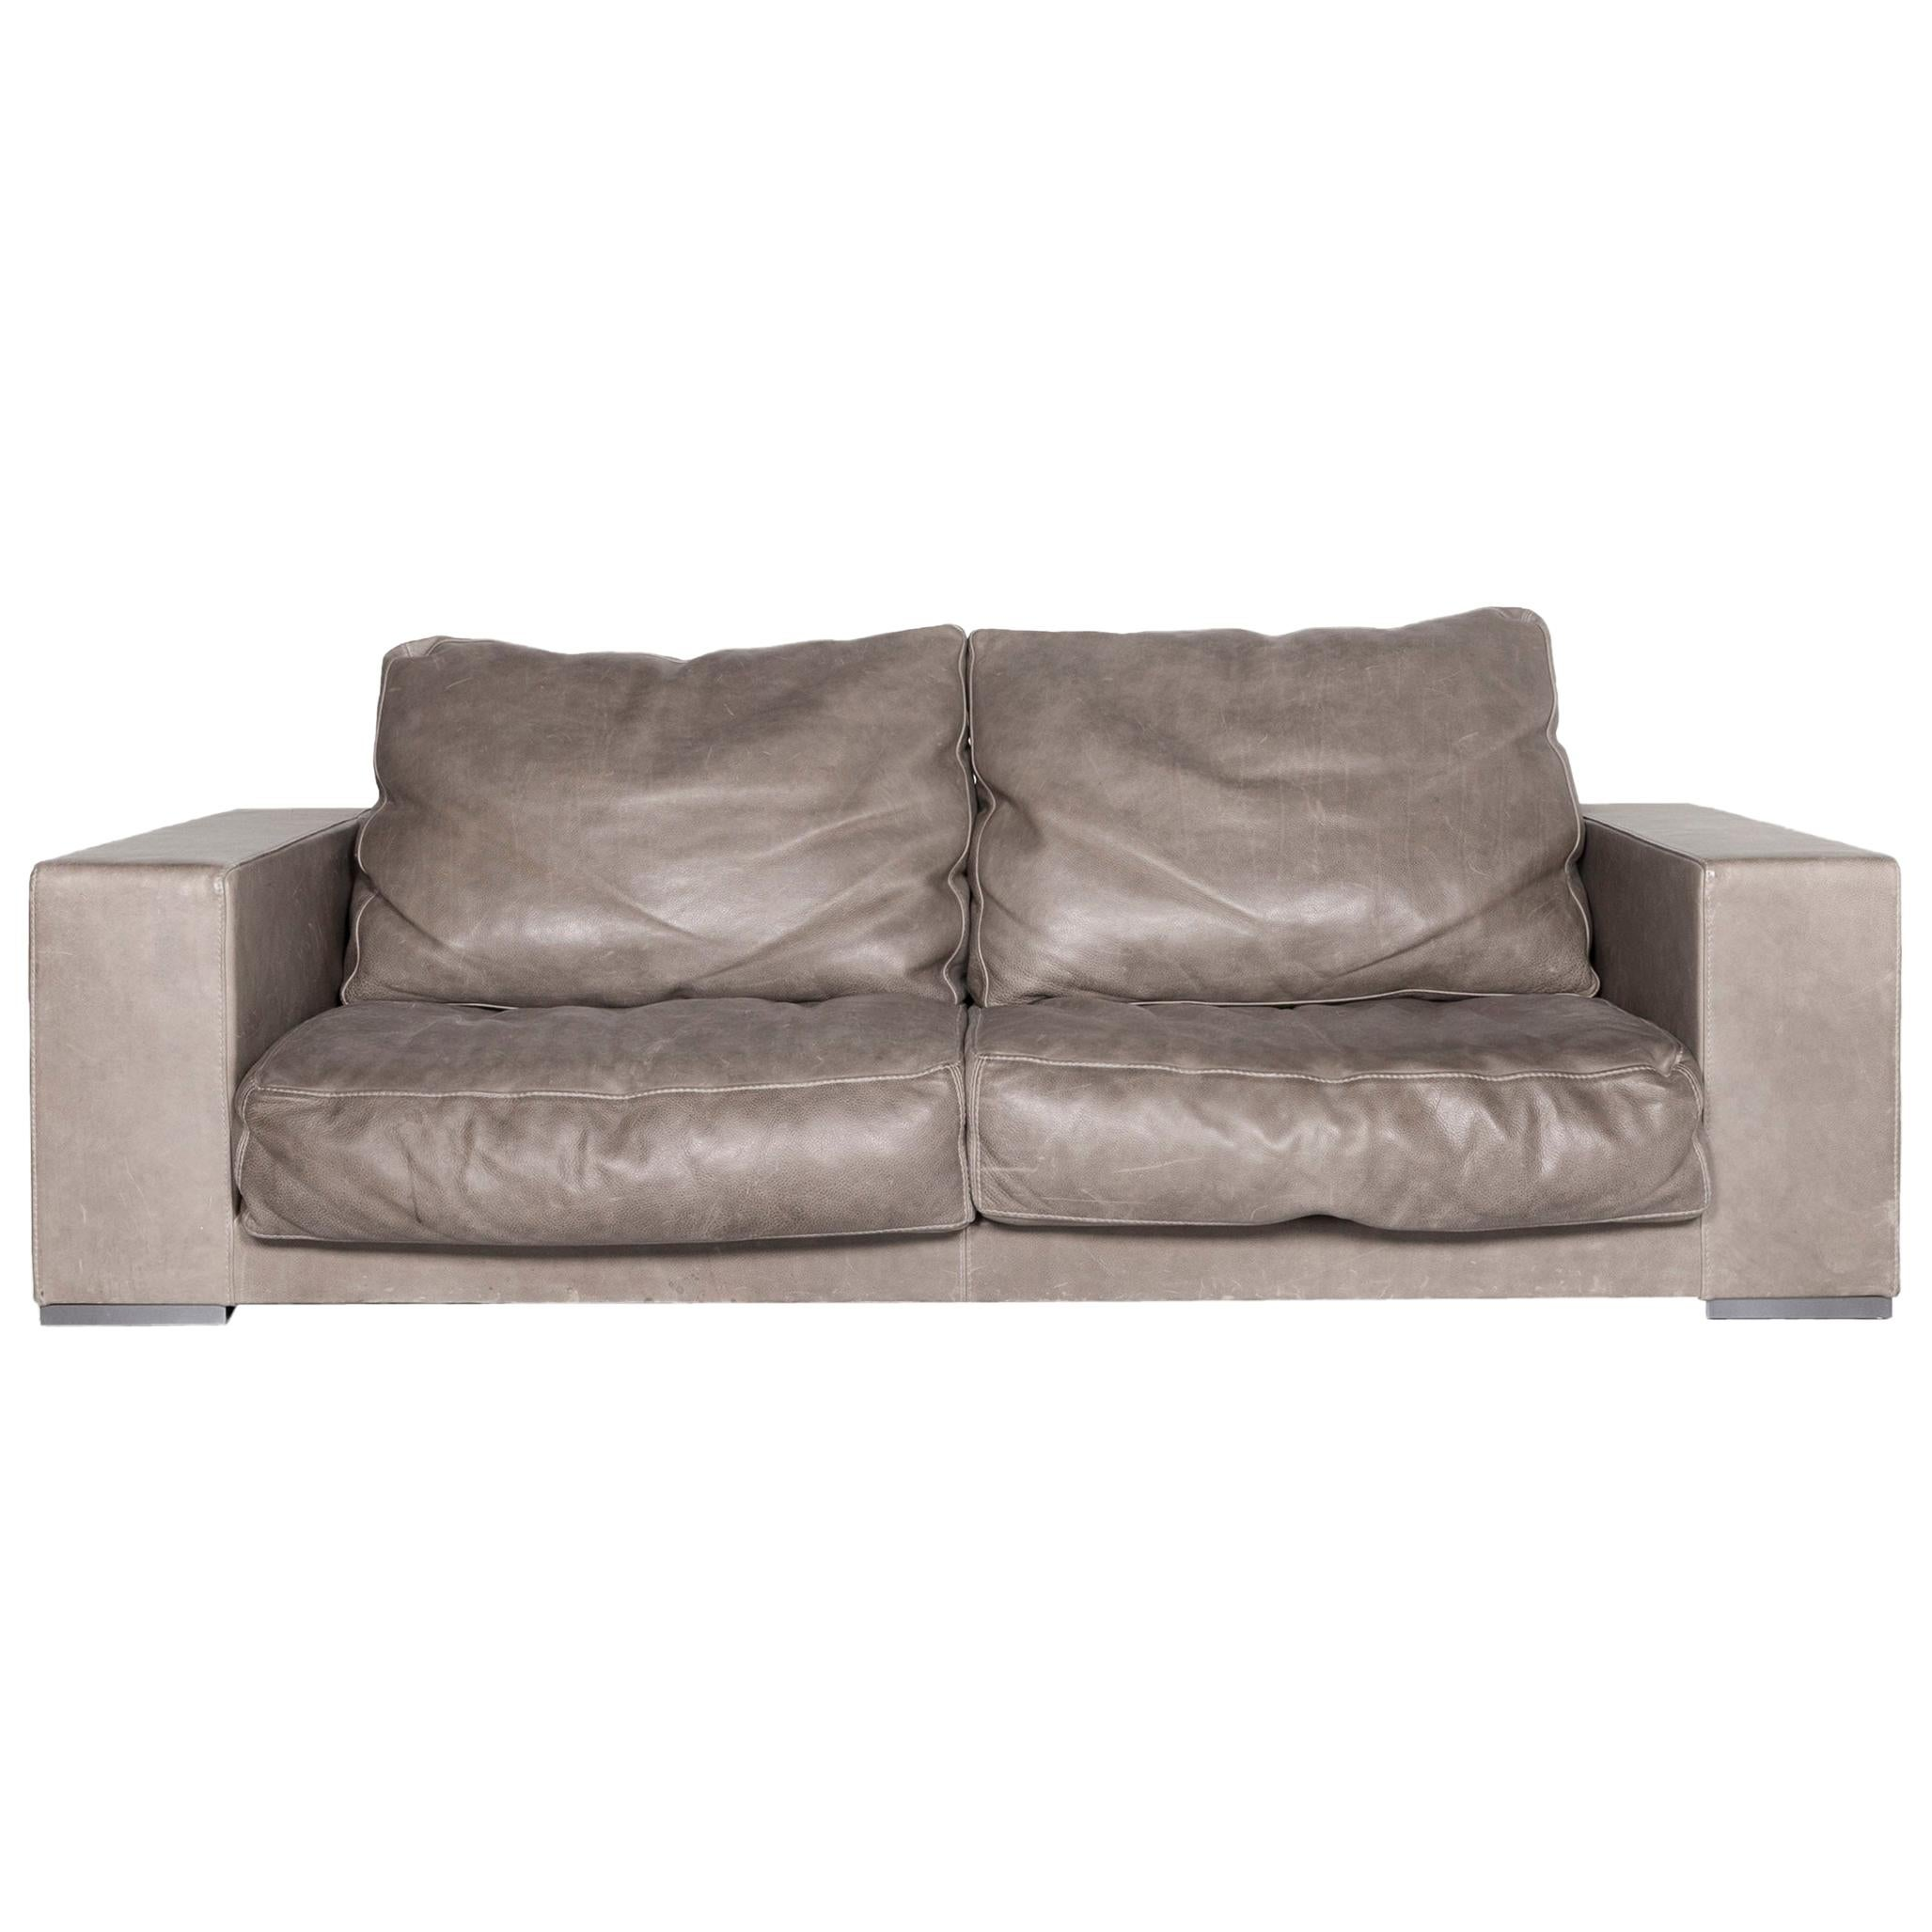 Italian Tufted Black Leather Chester Moon Sofa By Paola ...